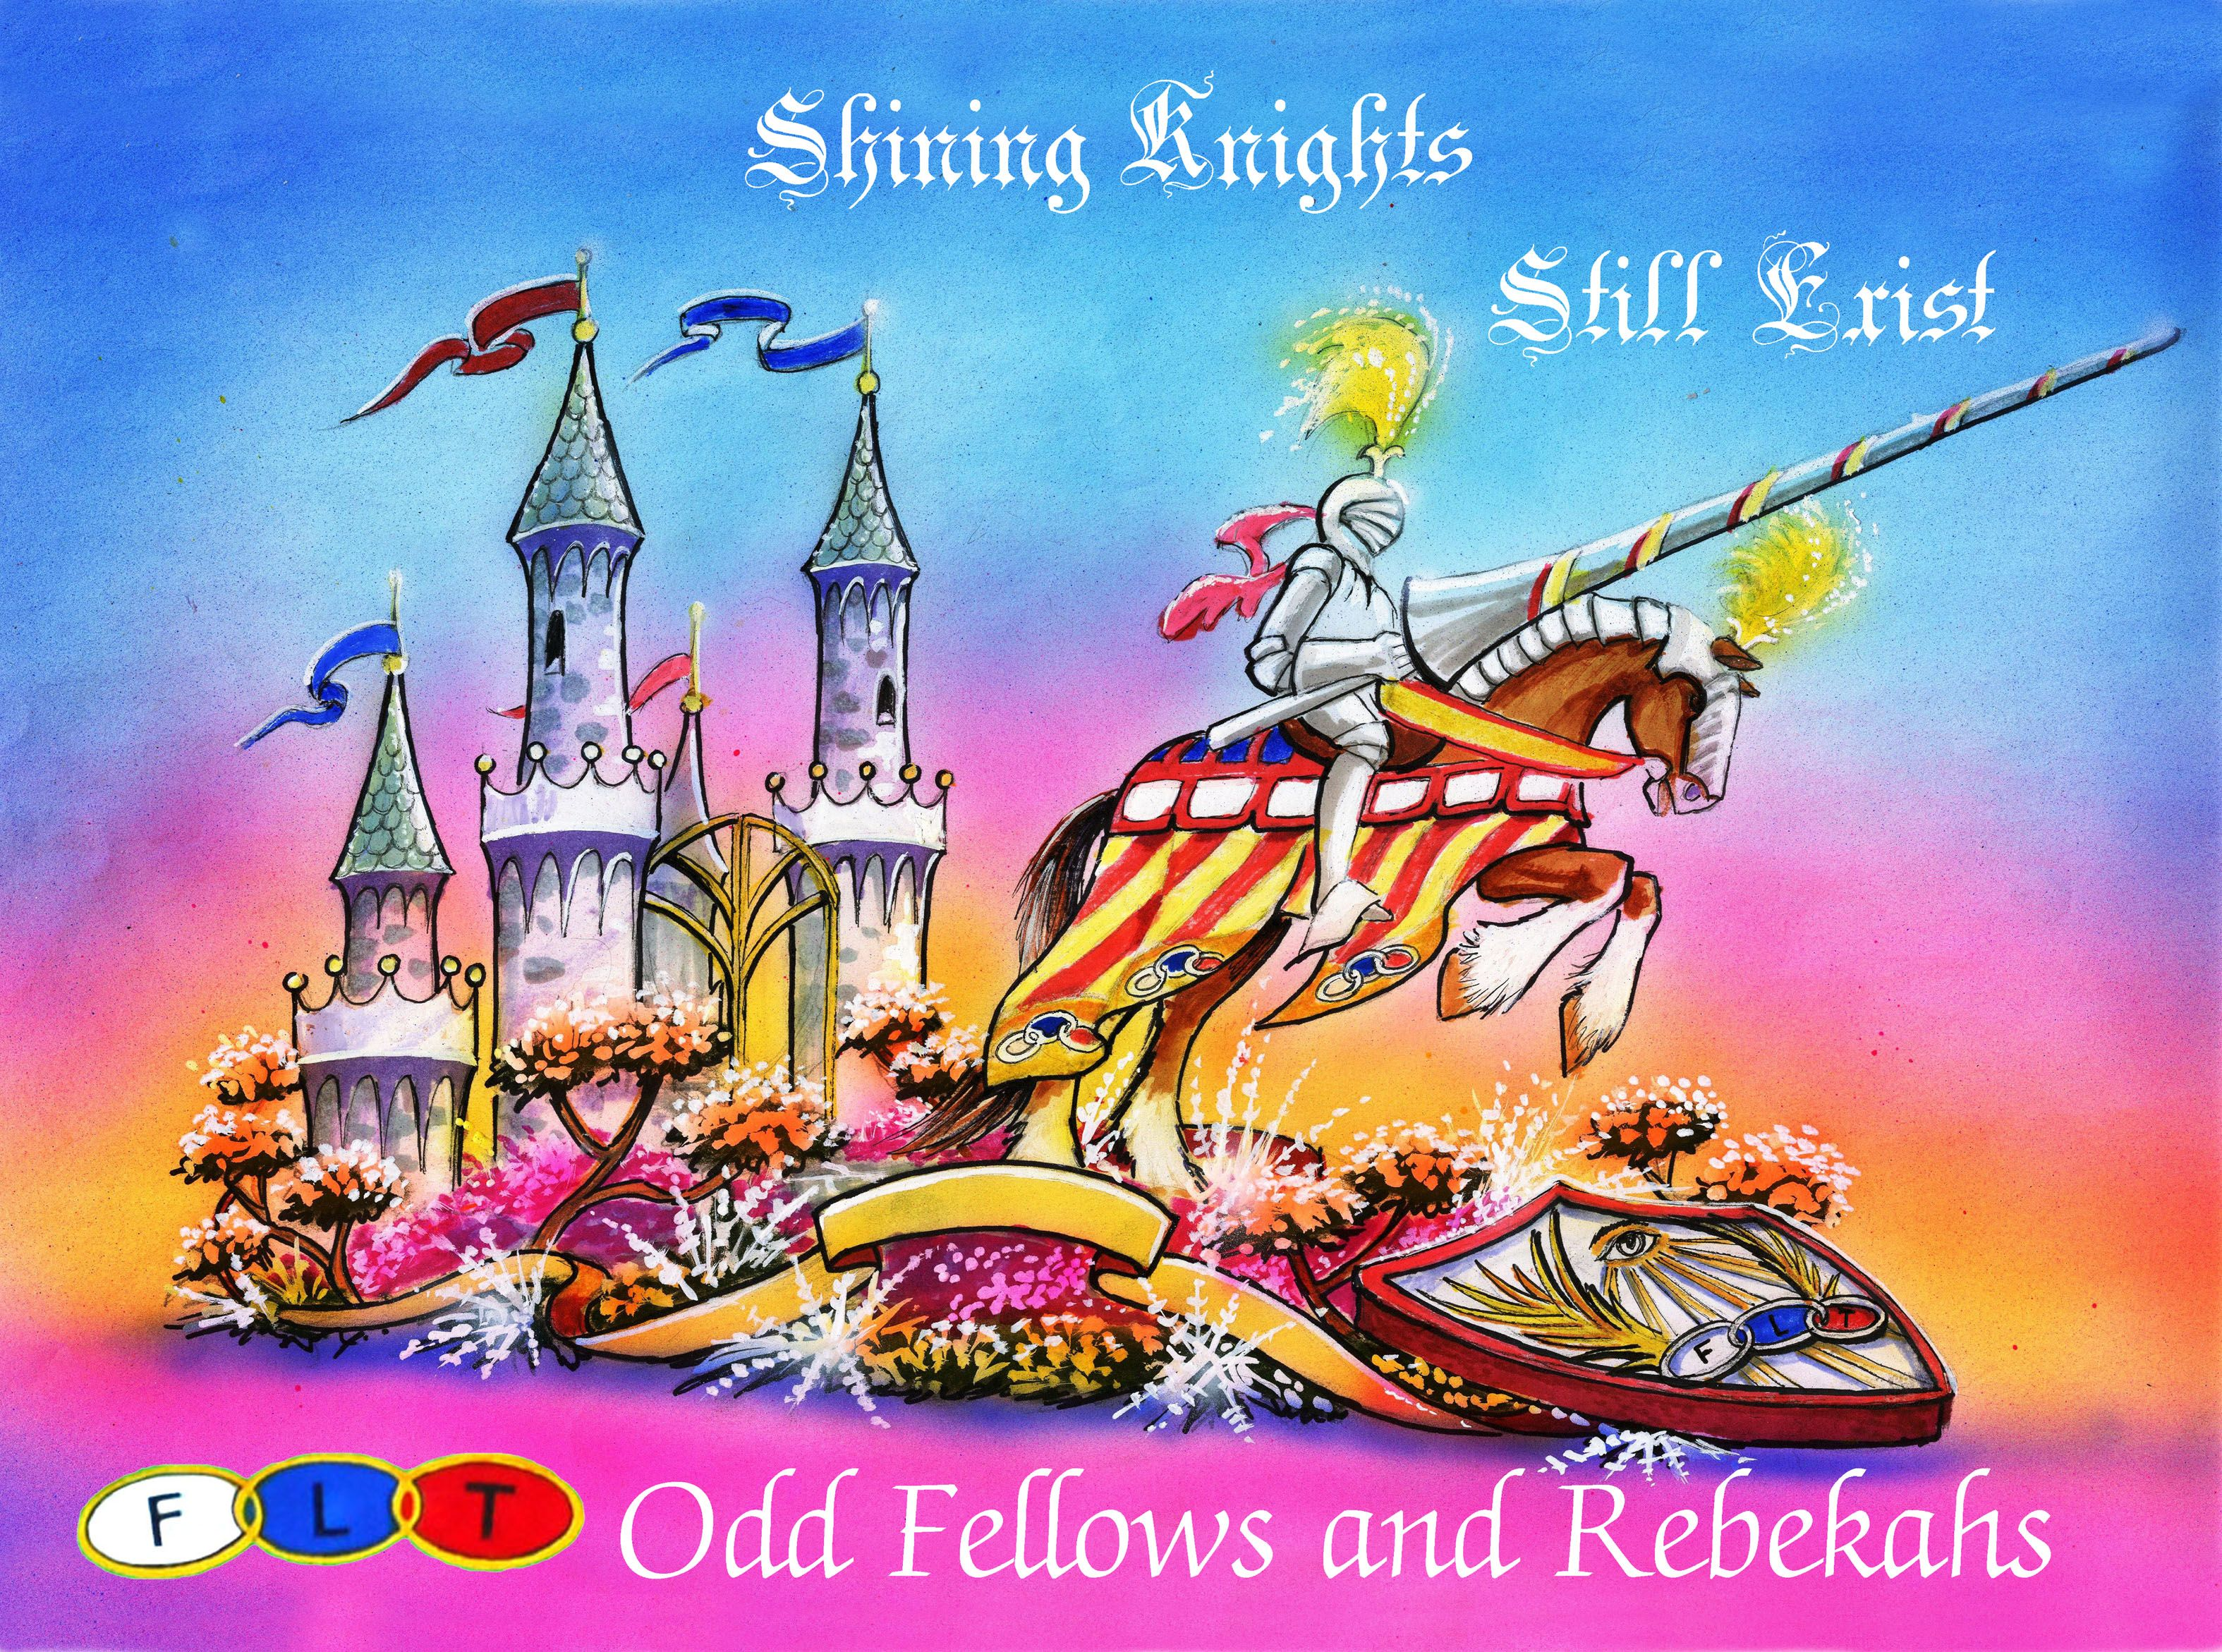 "2012 - Odd Fellows and Rebekahs ""Shining Knights Still Exist"" - Michelle Lofthouse"